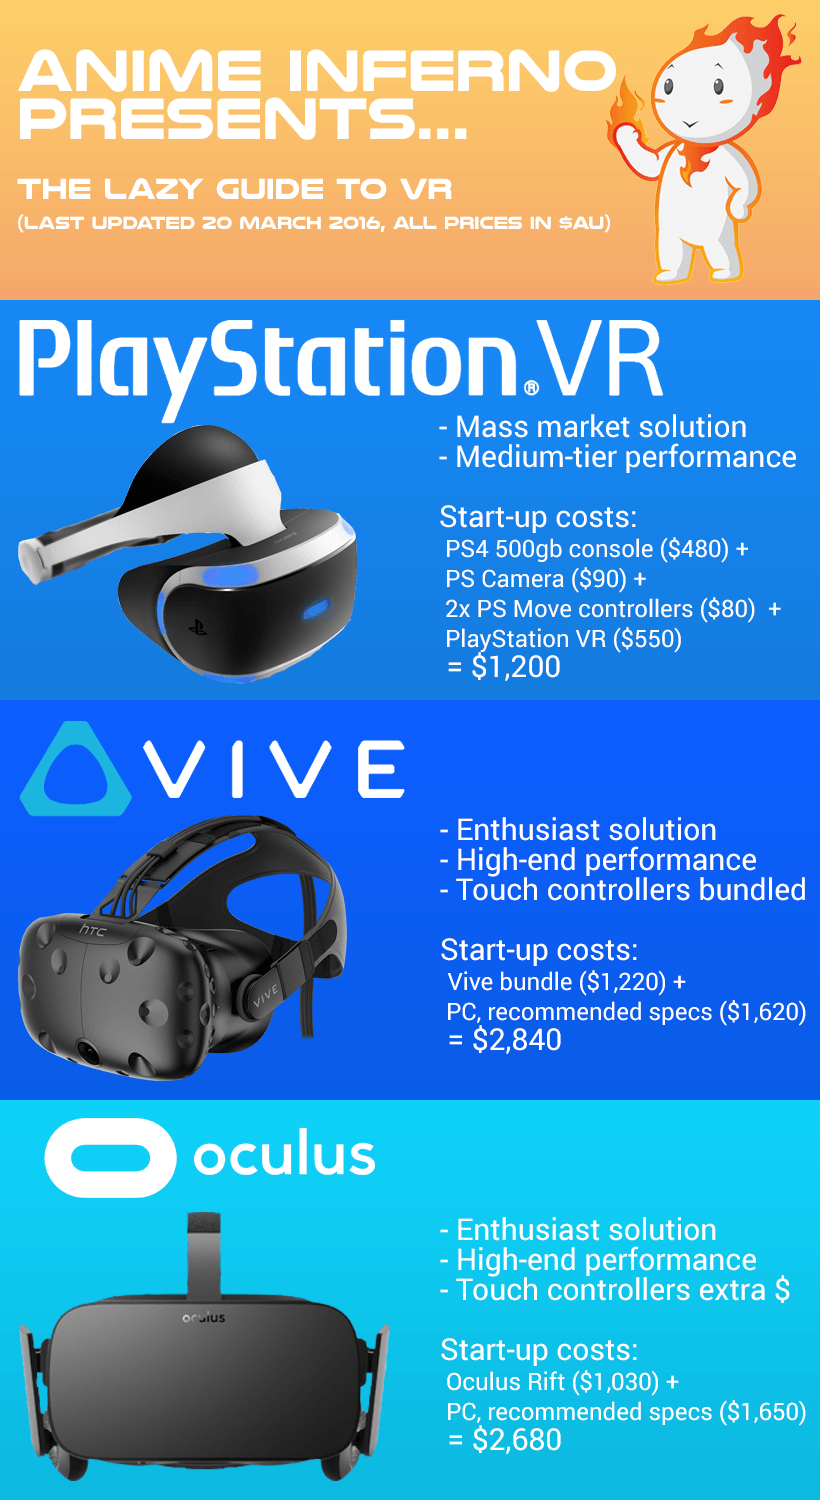 March 2016 VR round-up - PS VR vs Vive vs Oculus infographic image